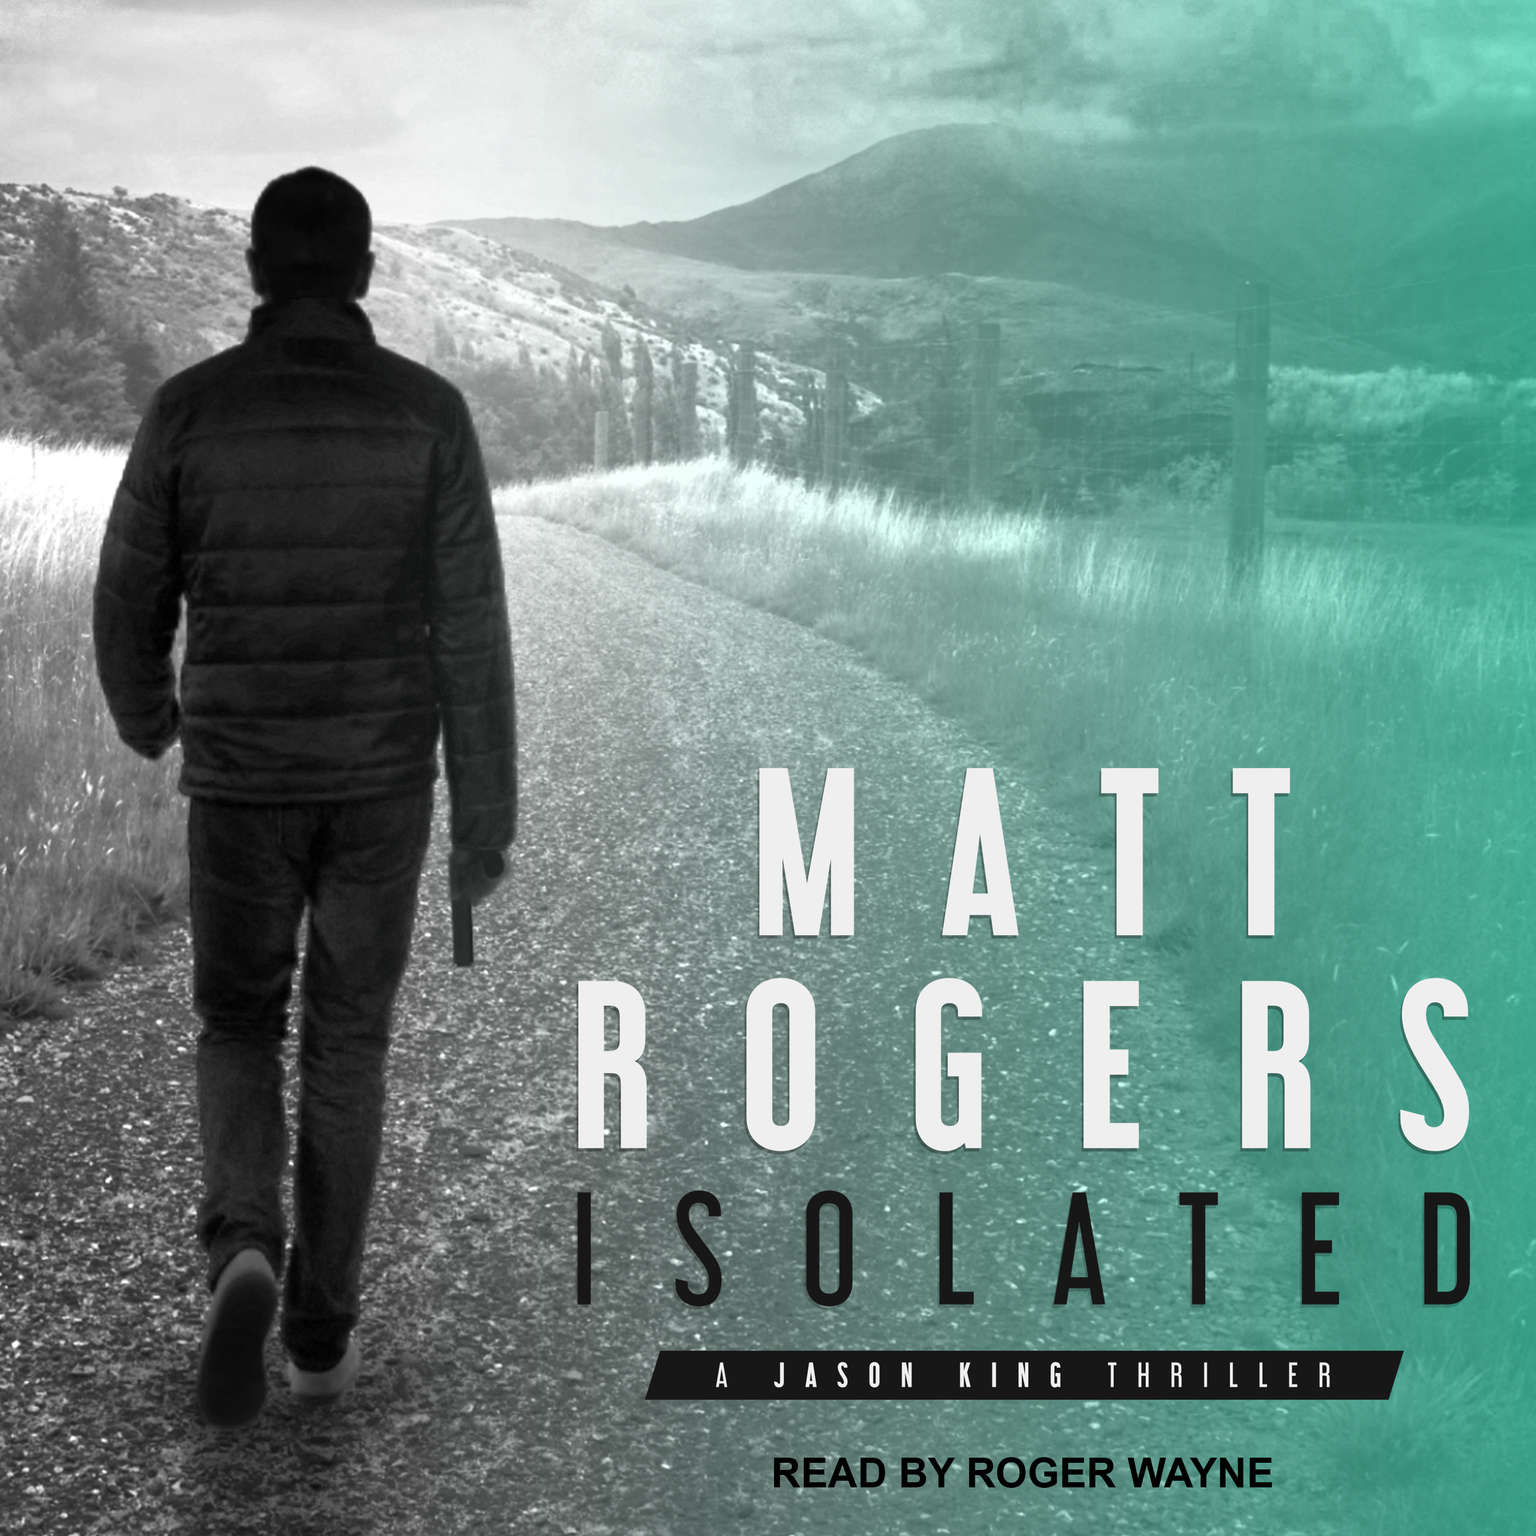 Isolated: A Jason King Thriller Audiobook, by Matt Rogers